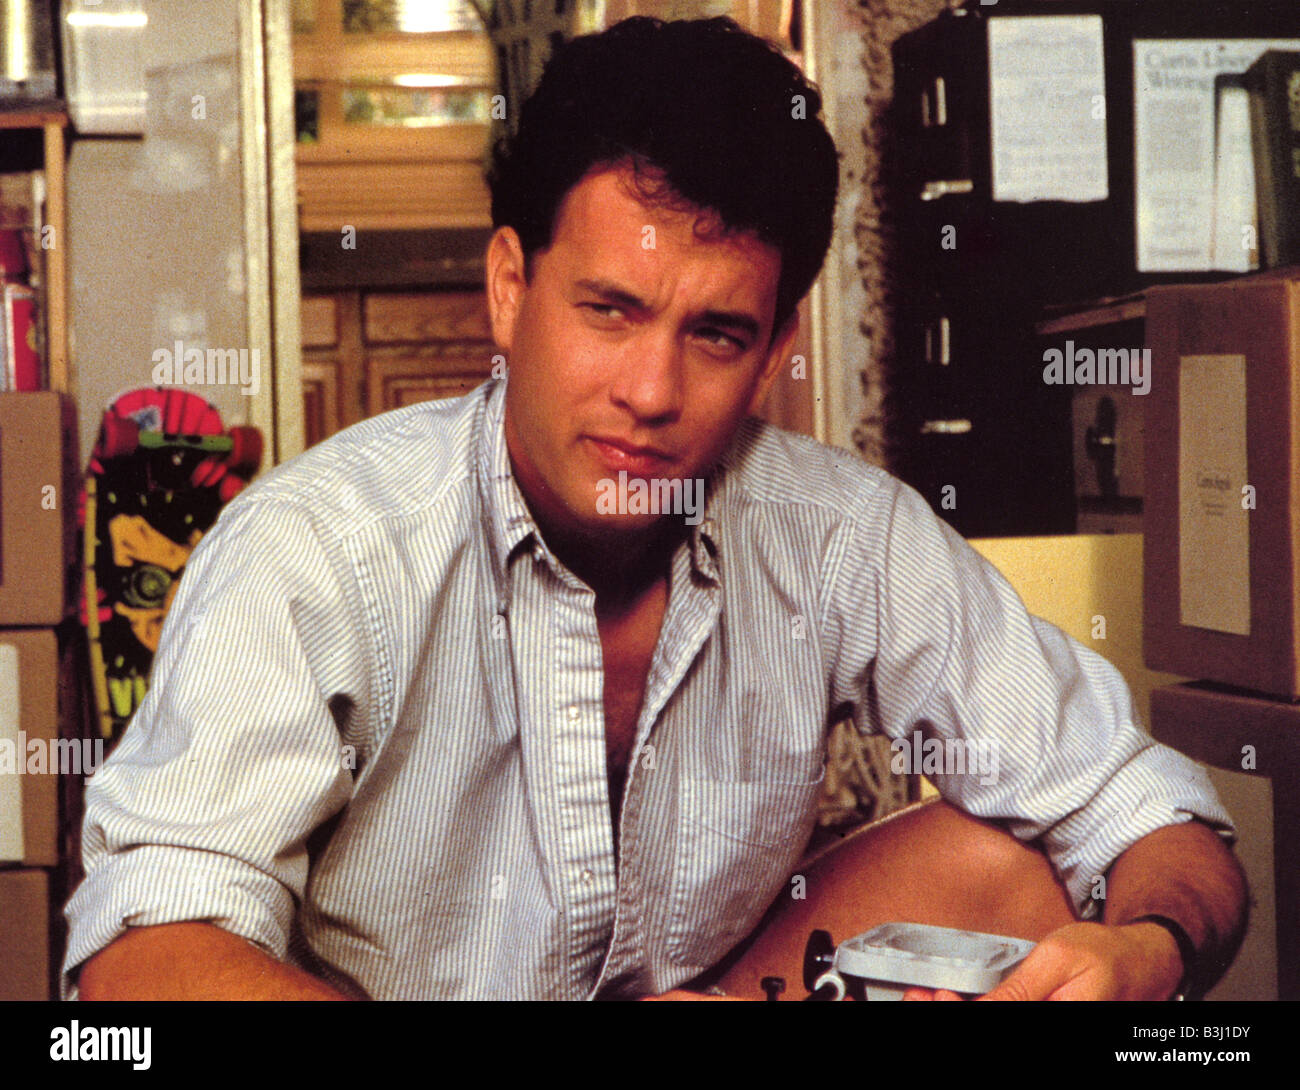 THE BURBS 1988 UIP film with Tom Hanks - Stock Image